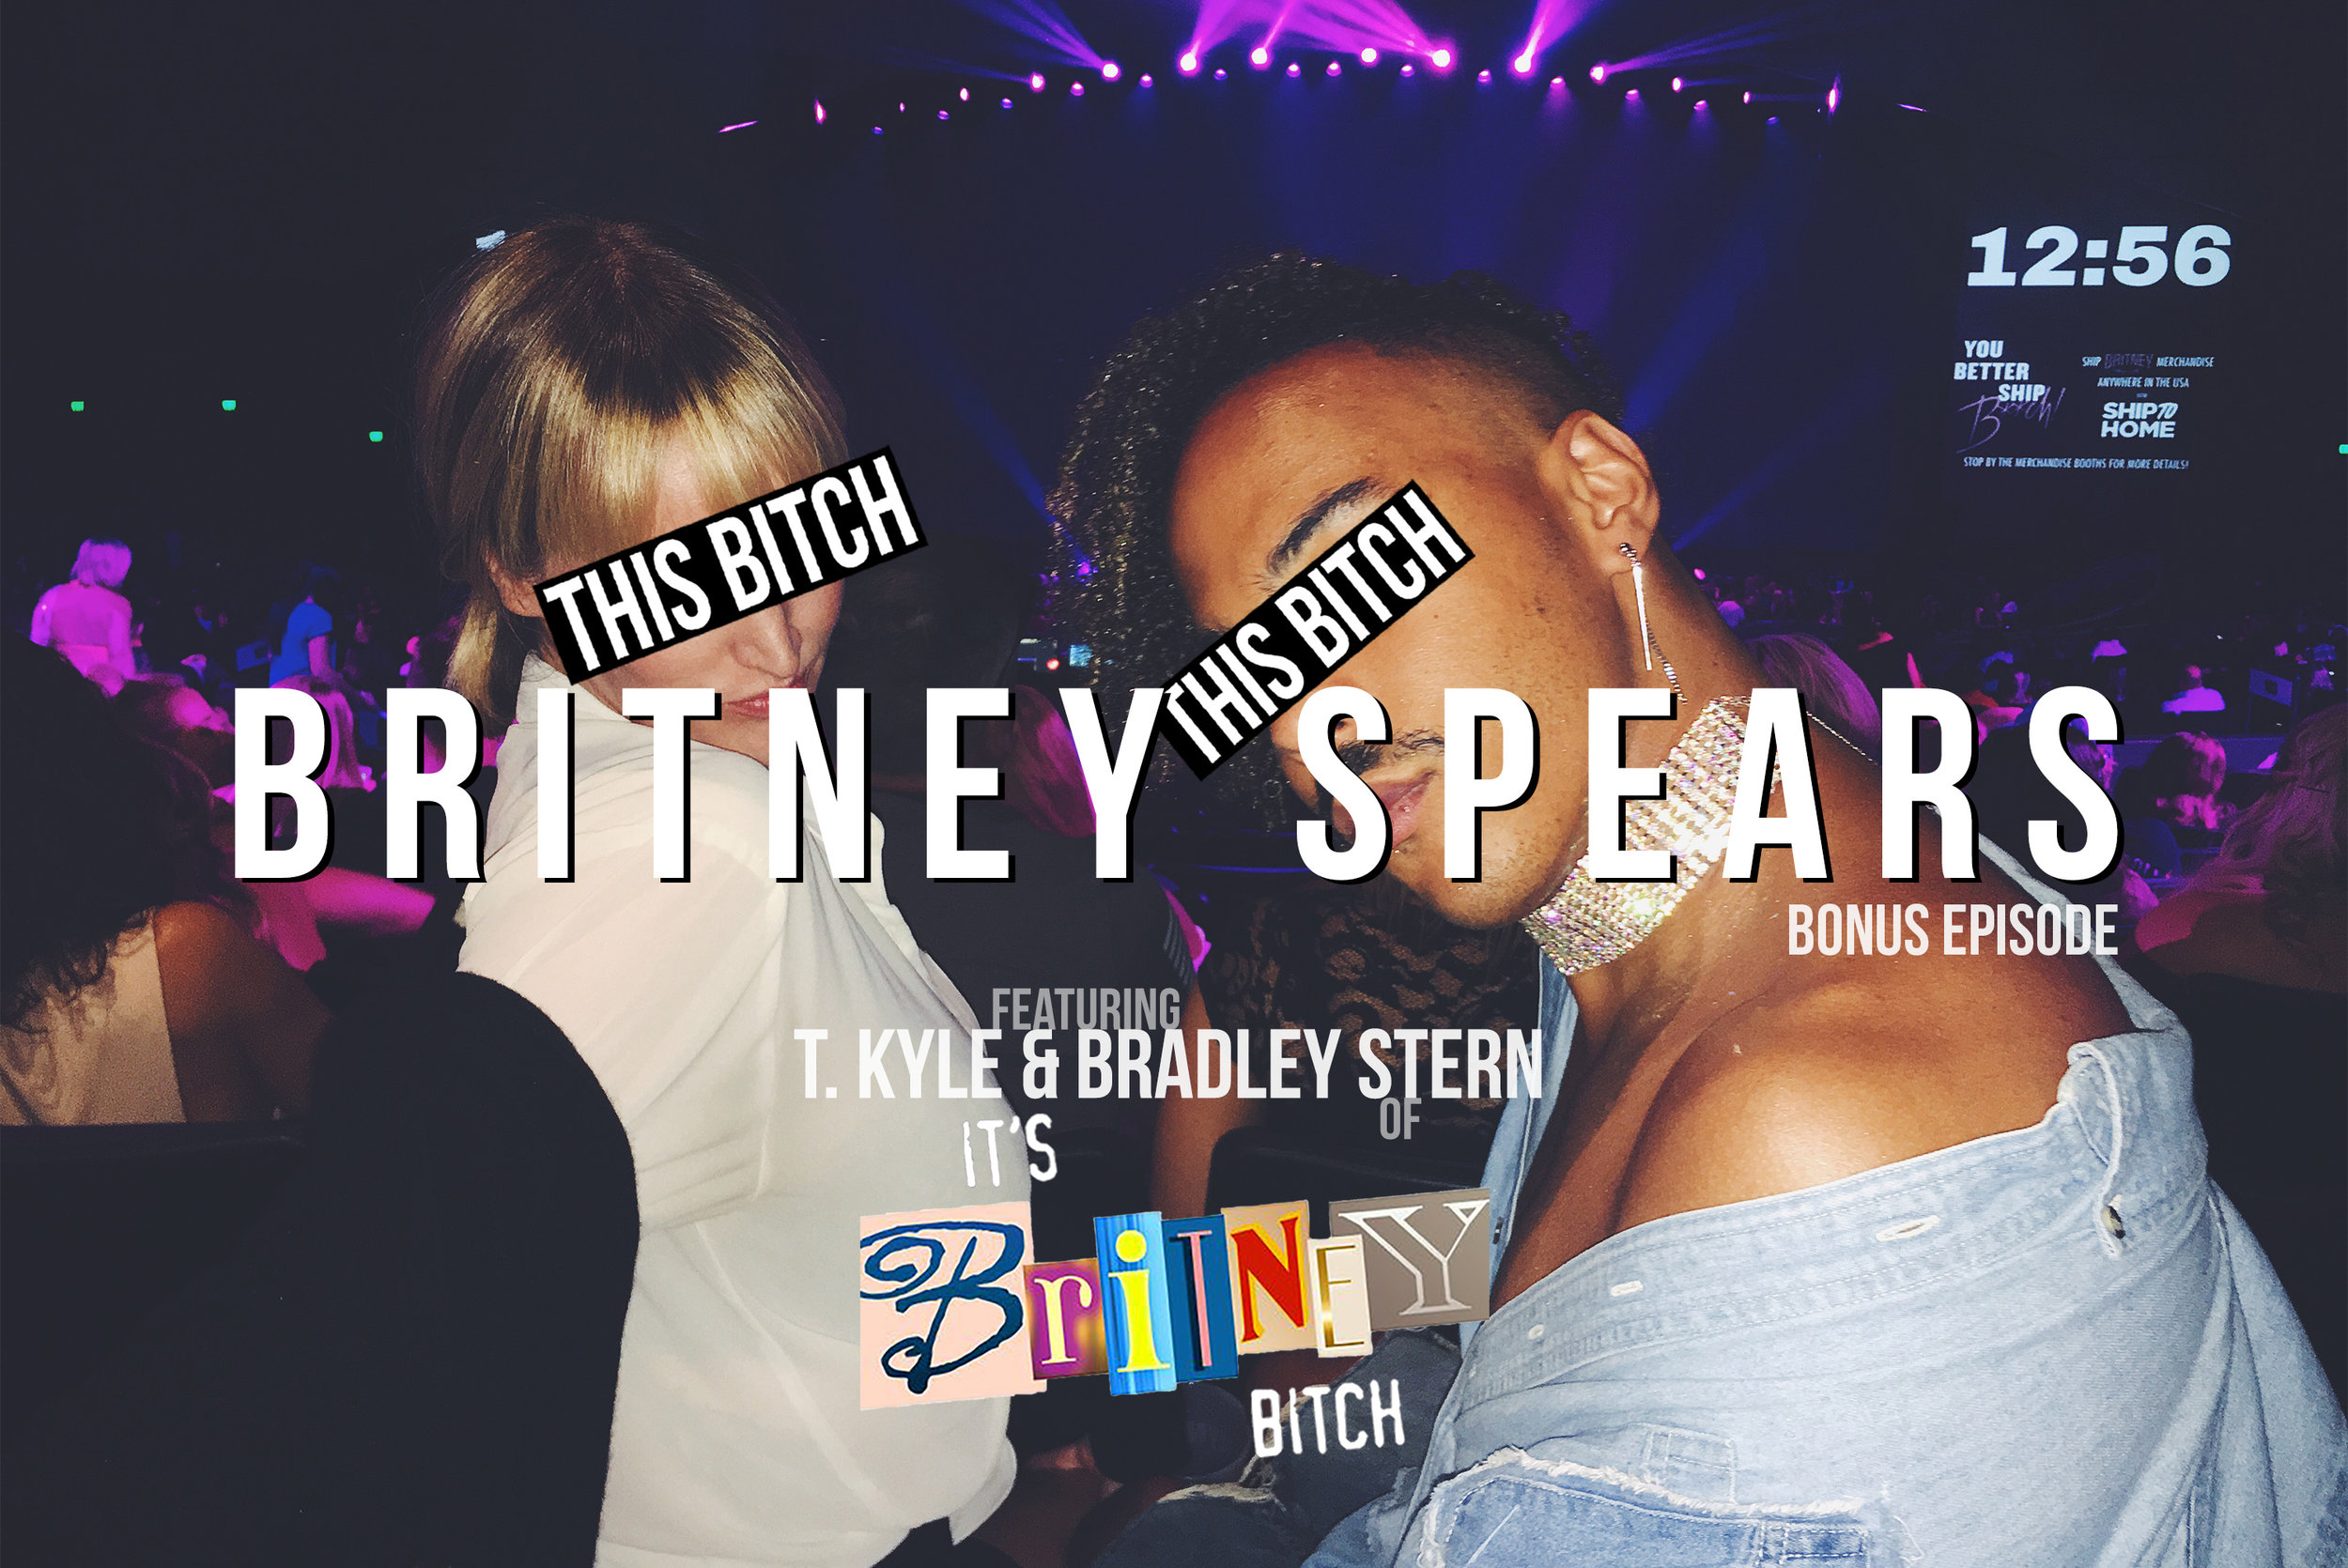 IT'S THIS BITCH BRITNEY SPEARS